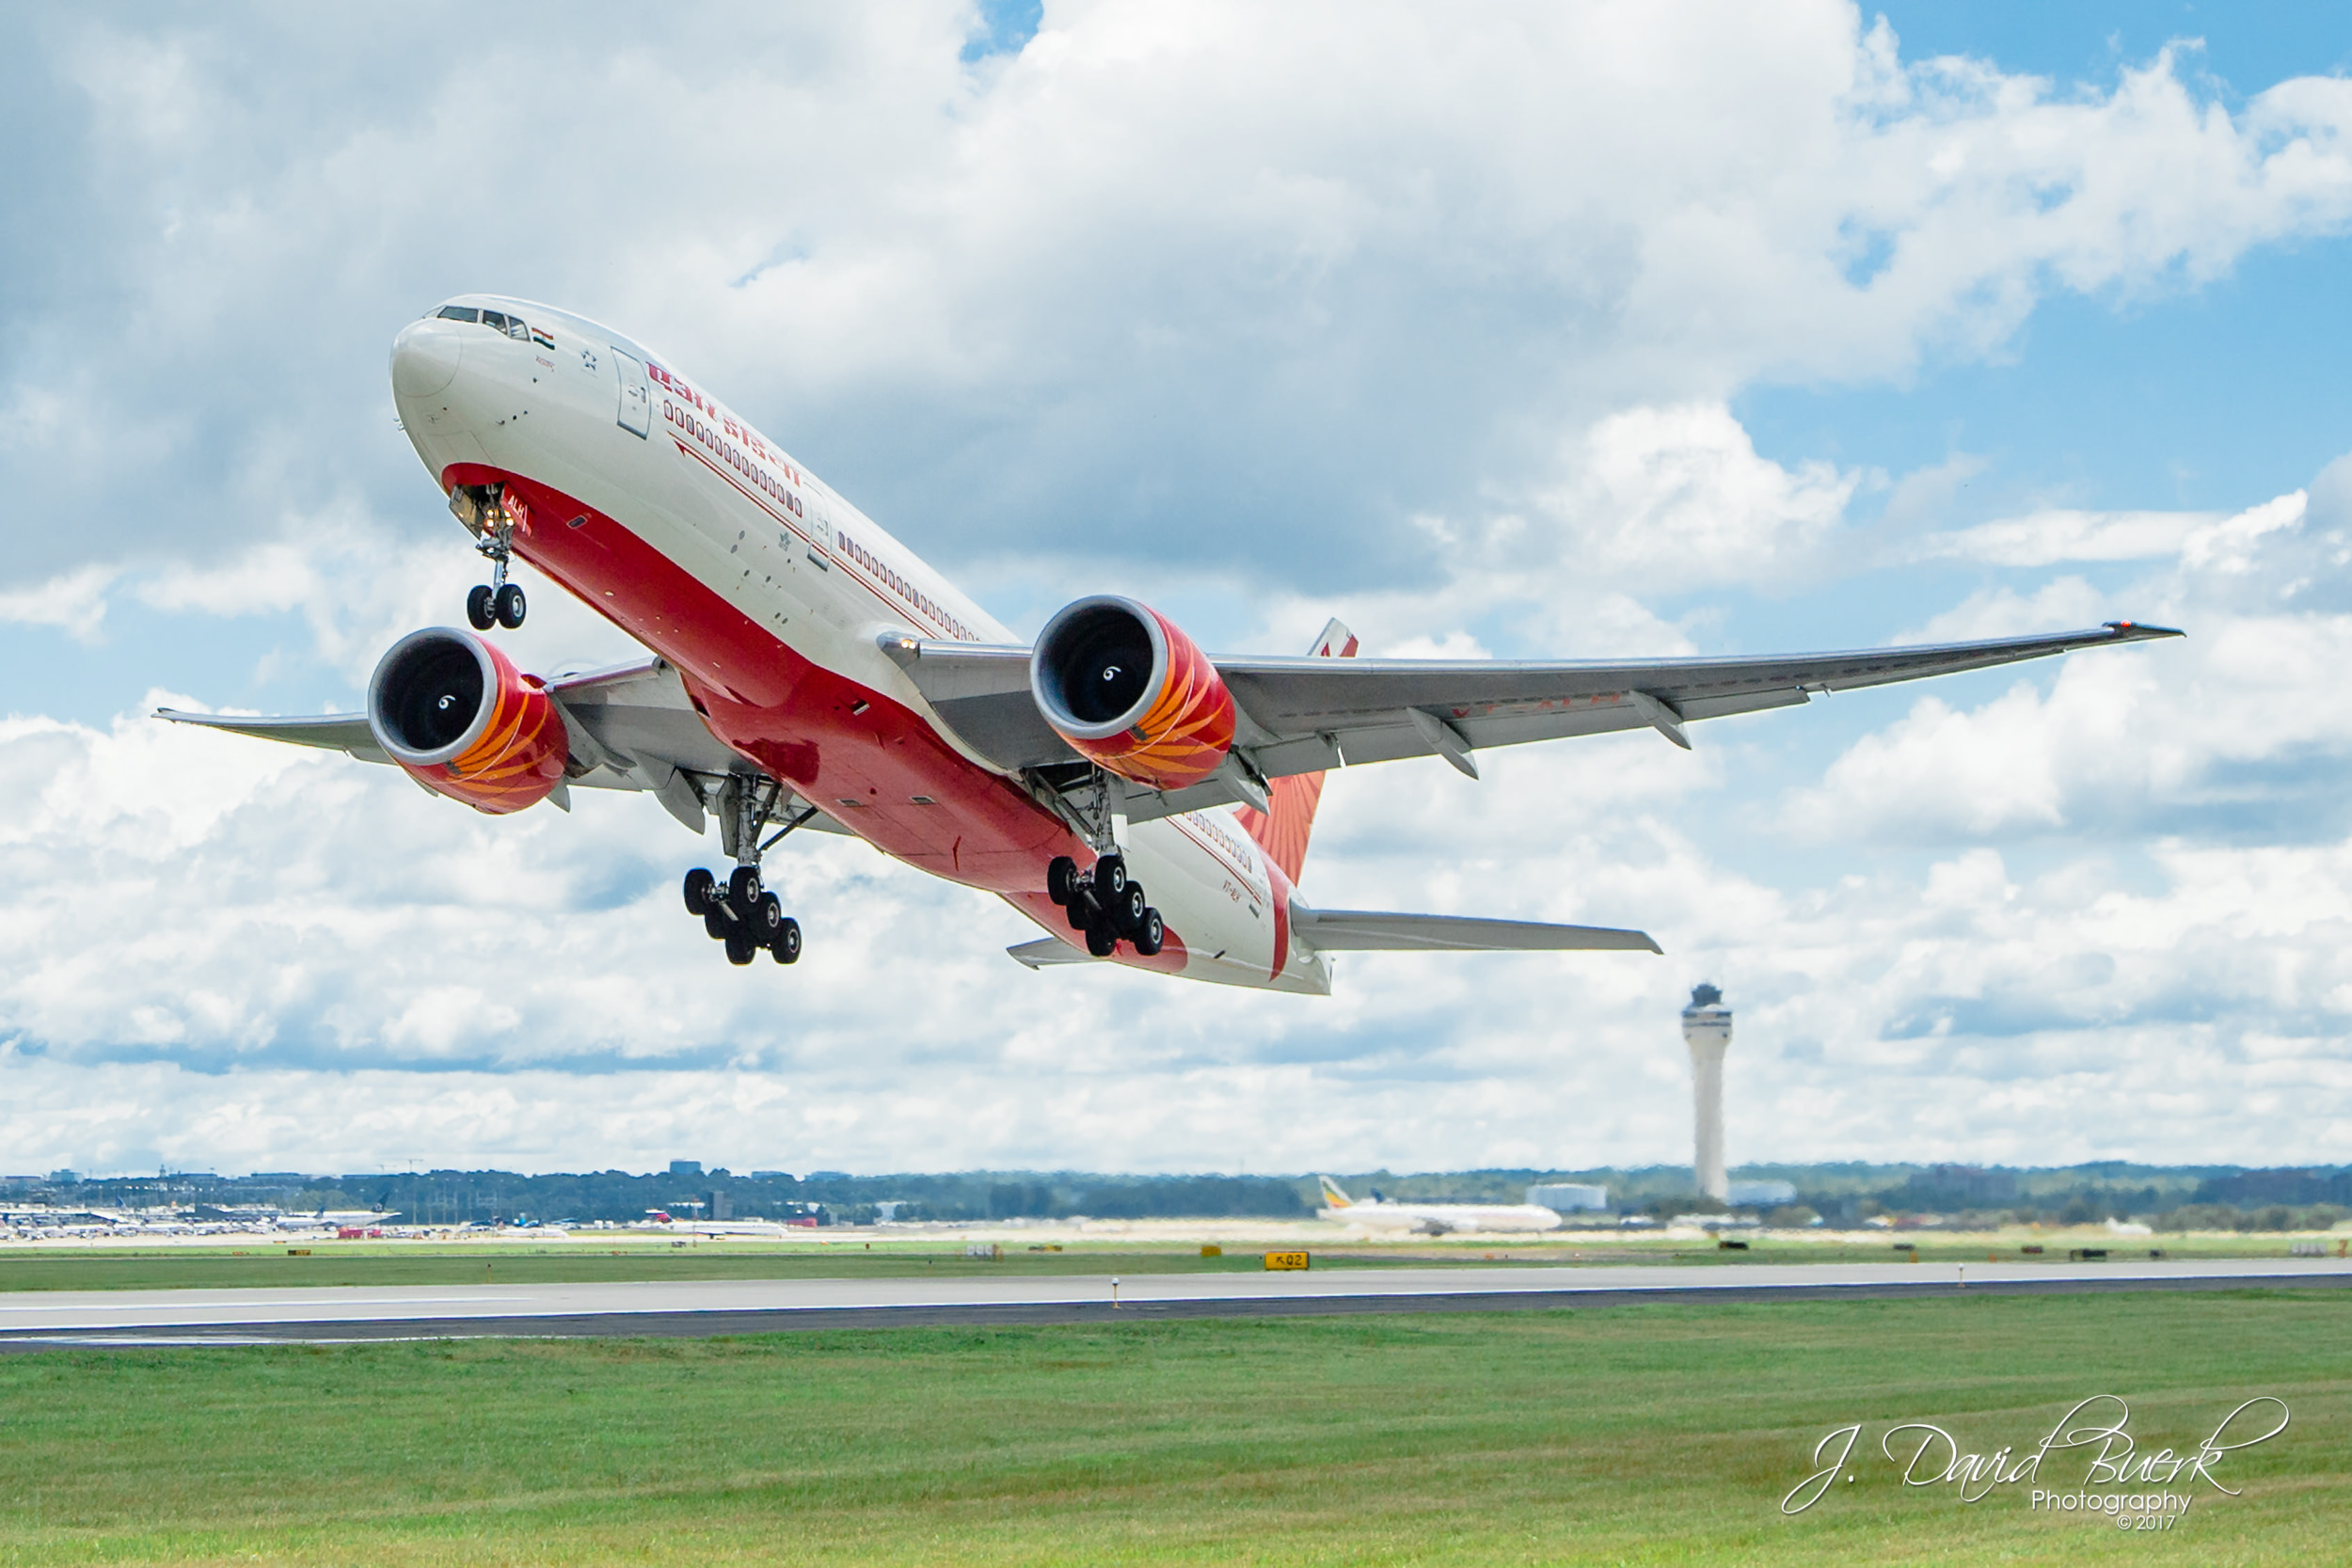 Air India's 777-200LR departing Washington Dulles International Airport for the first time.